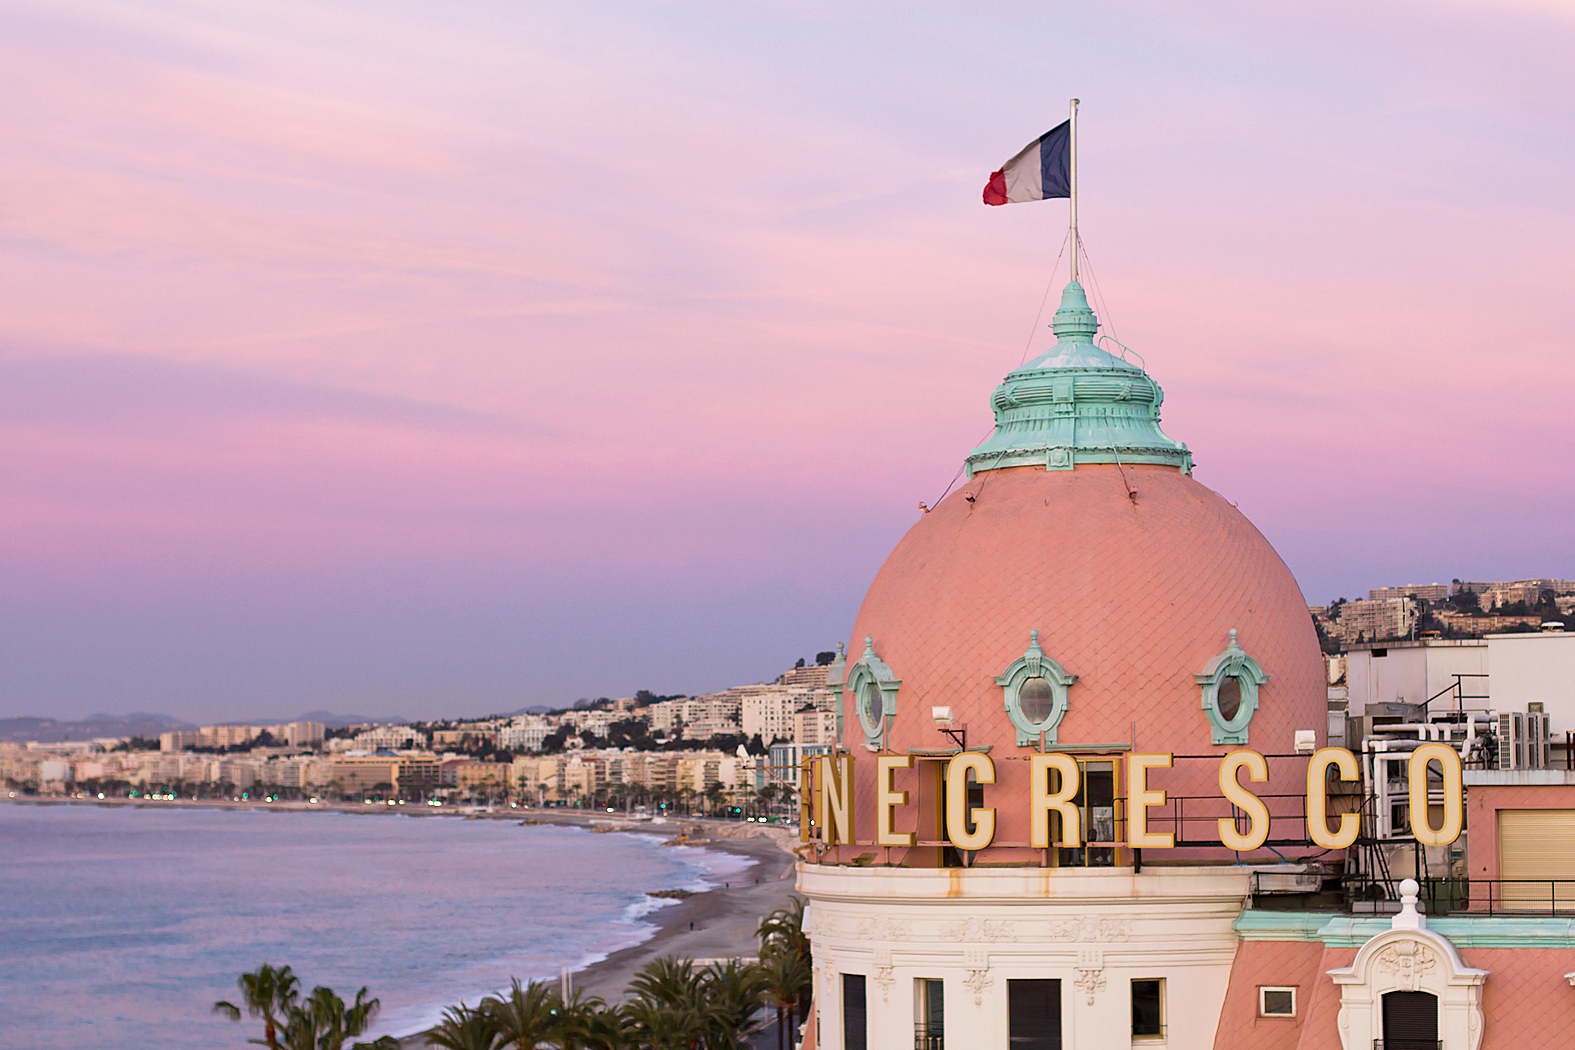 Le Negresco Nice fash-n-chips.com 1